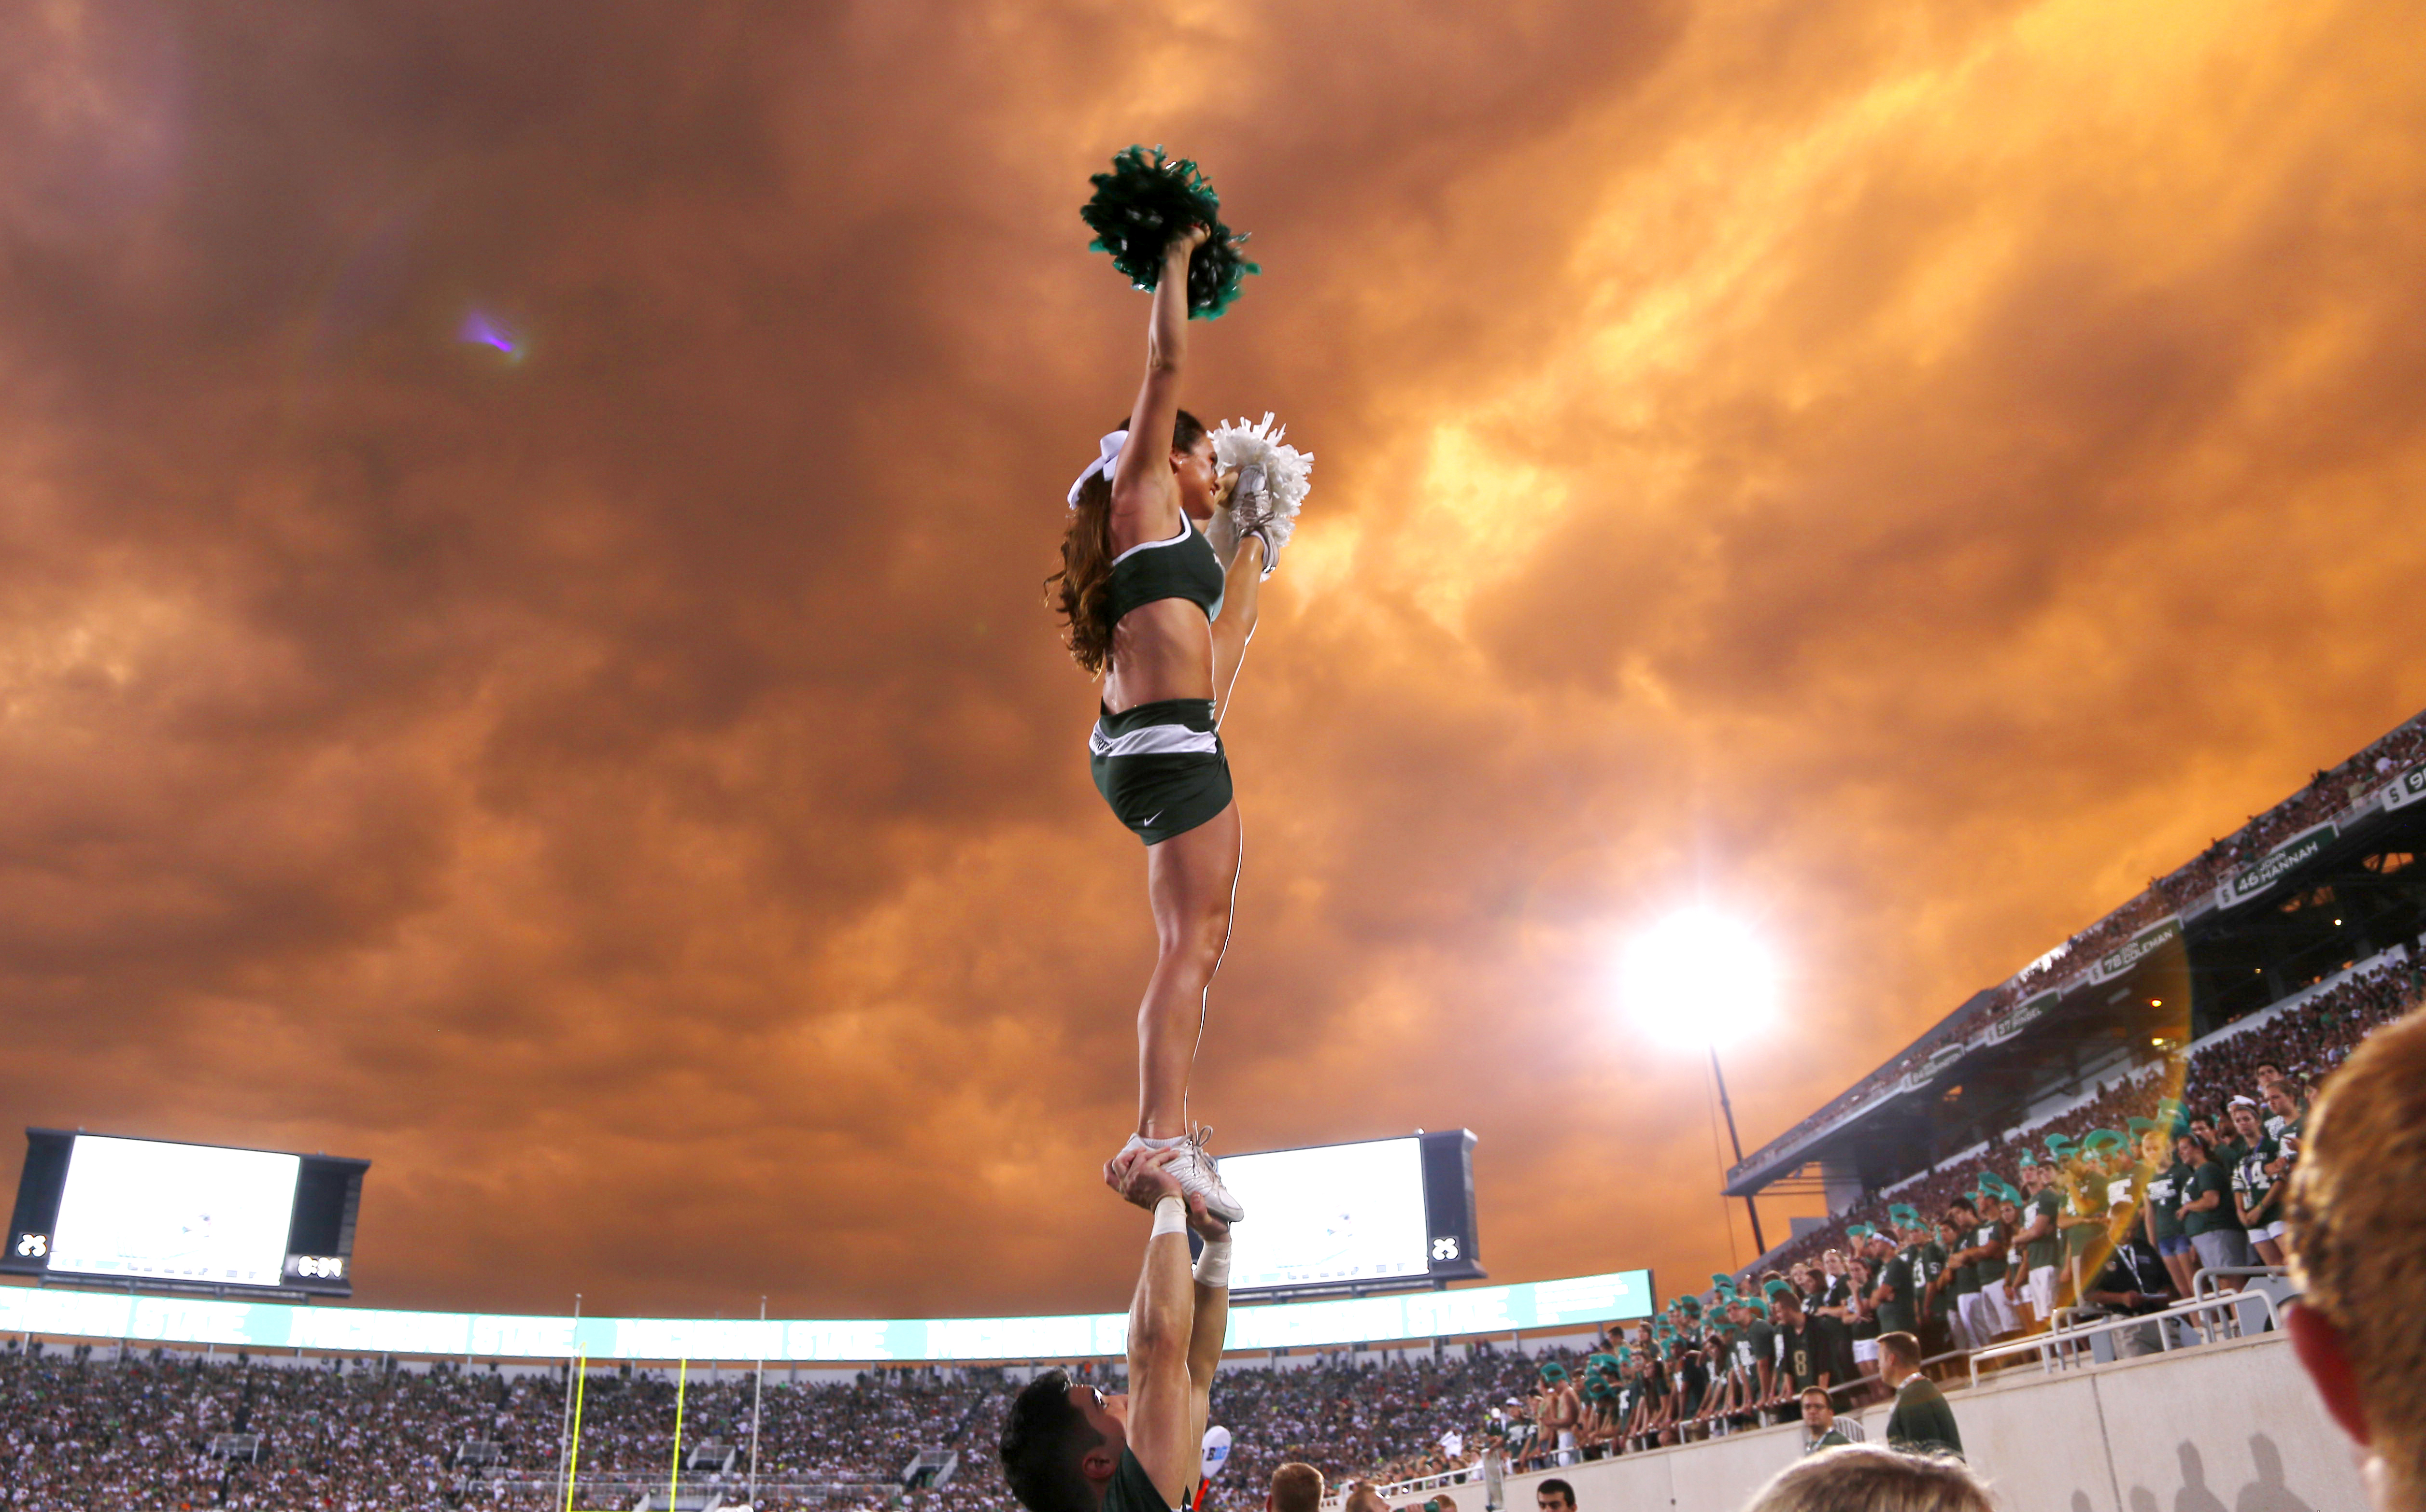 Michigan State cheerleaders perform during the first quarter against Western Michigan in East Lansing, Mich. (AP Photo/Al Goldis)